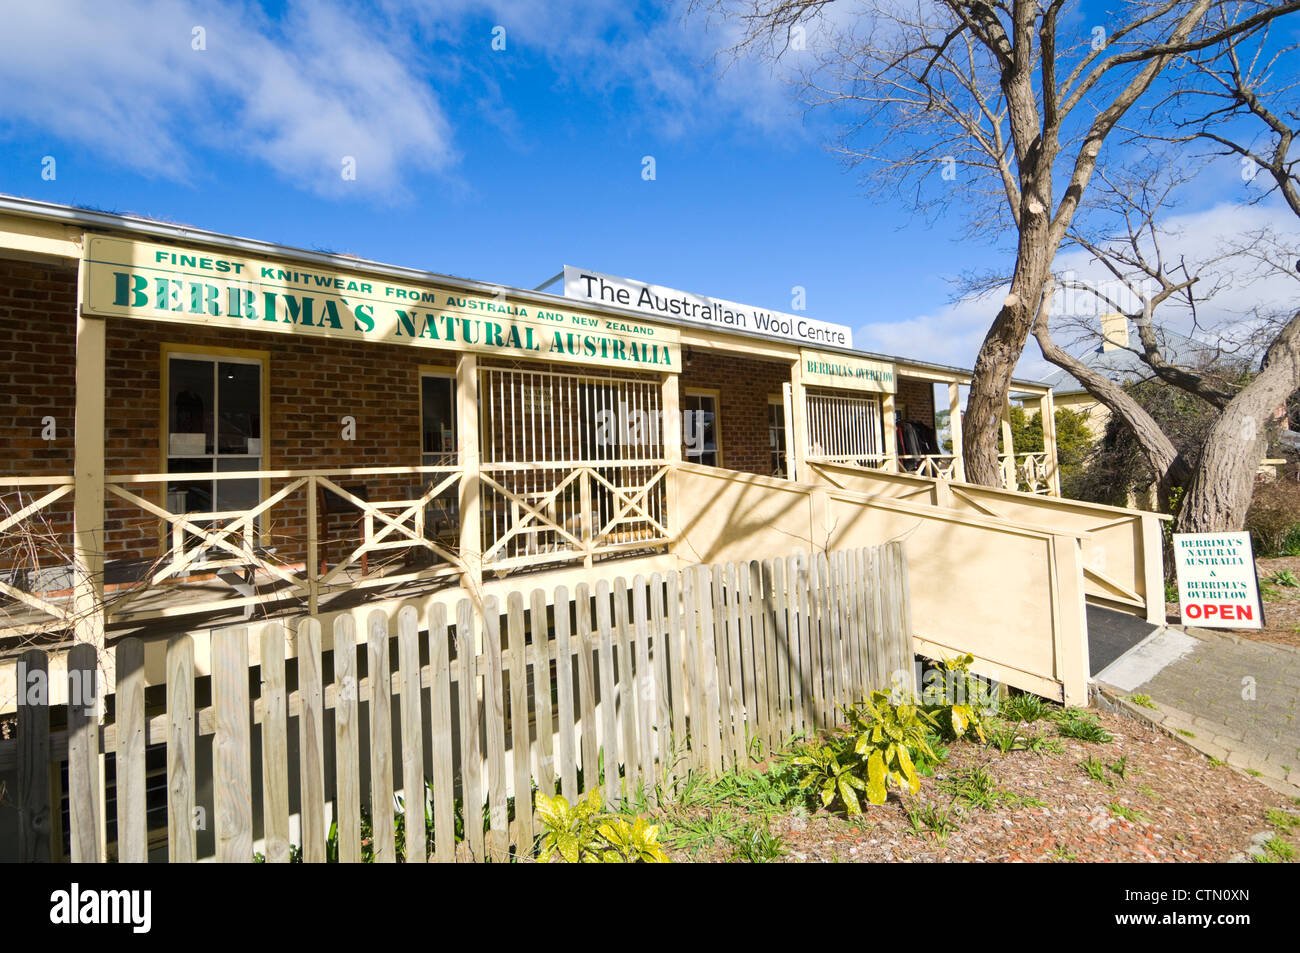 The Australian Wool Centre, Berrima, Southern Highlands, New South Wales, Australia - Stock Image